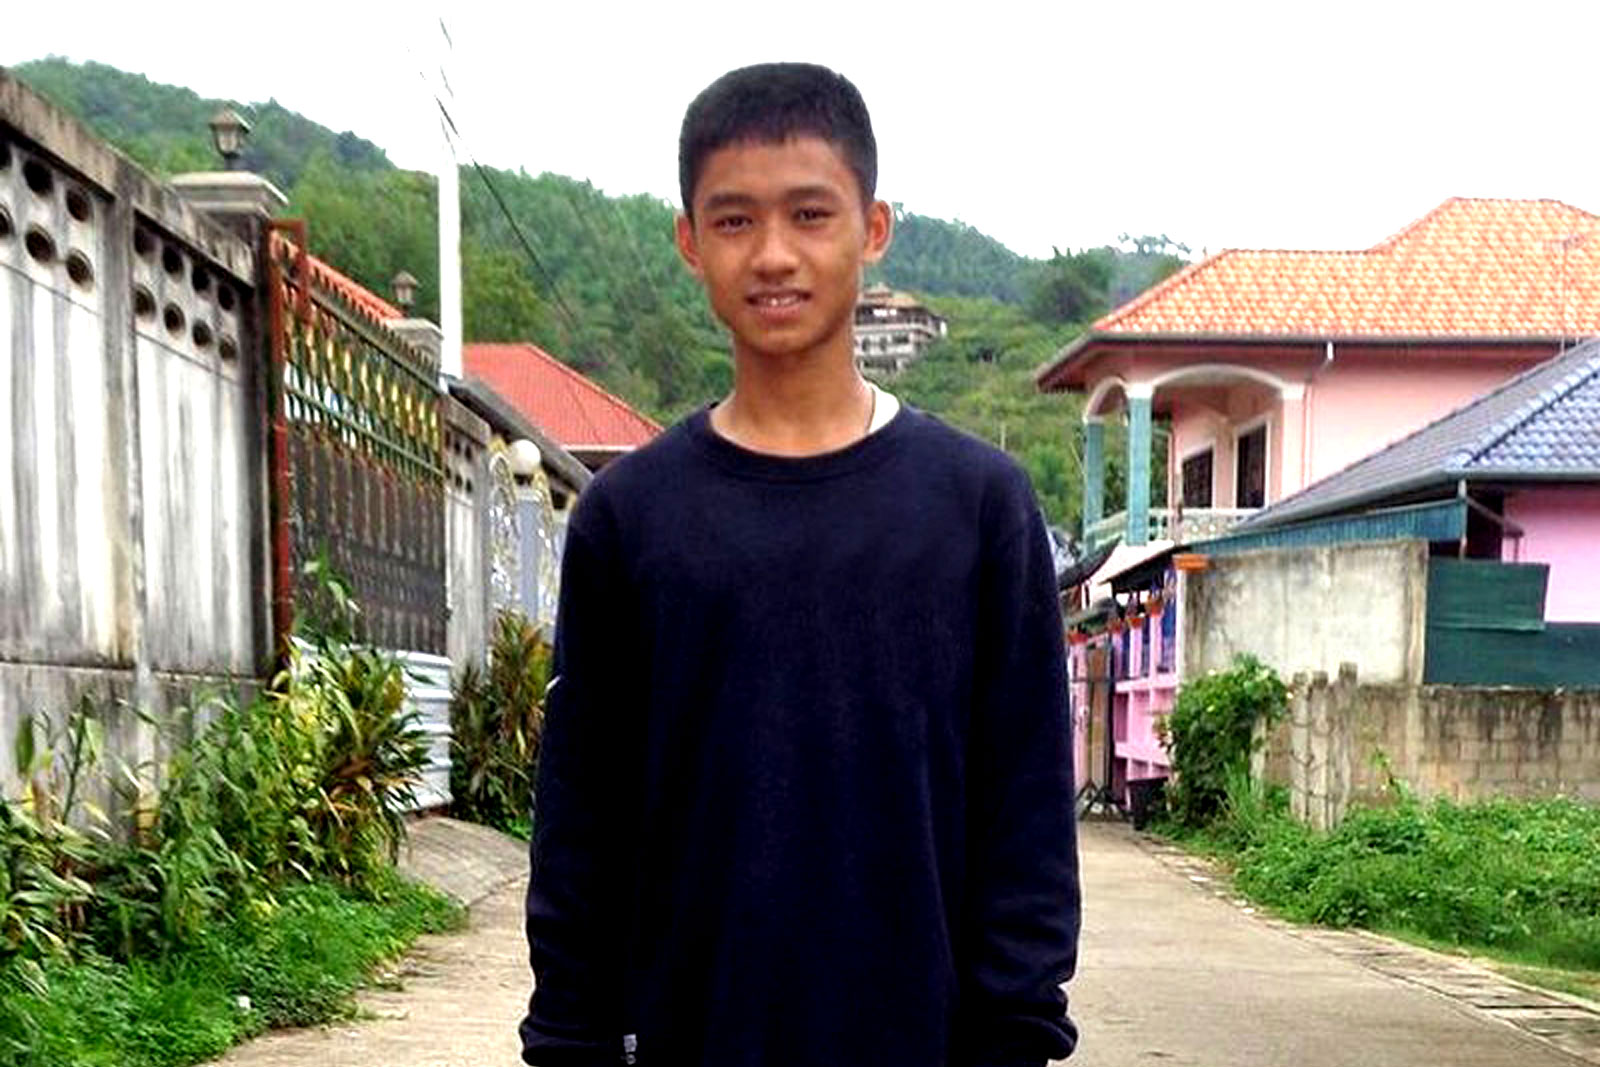 Meet Adun: Thailand Cave Hero and Inspiring Sponsored Teenager